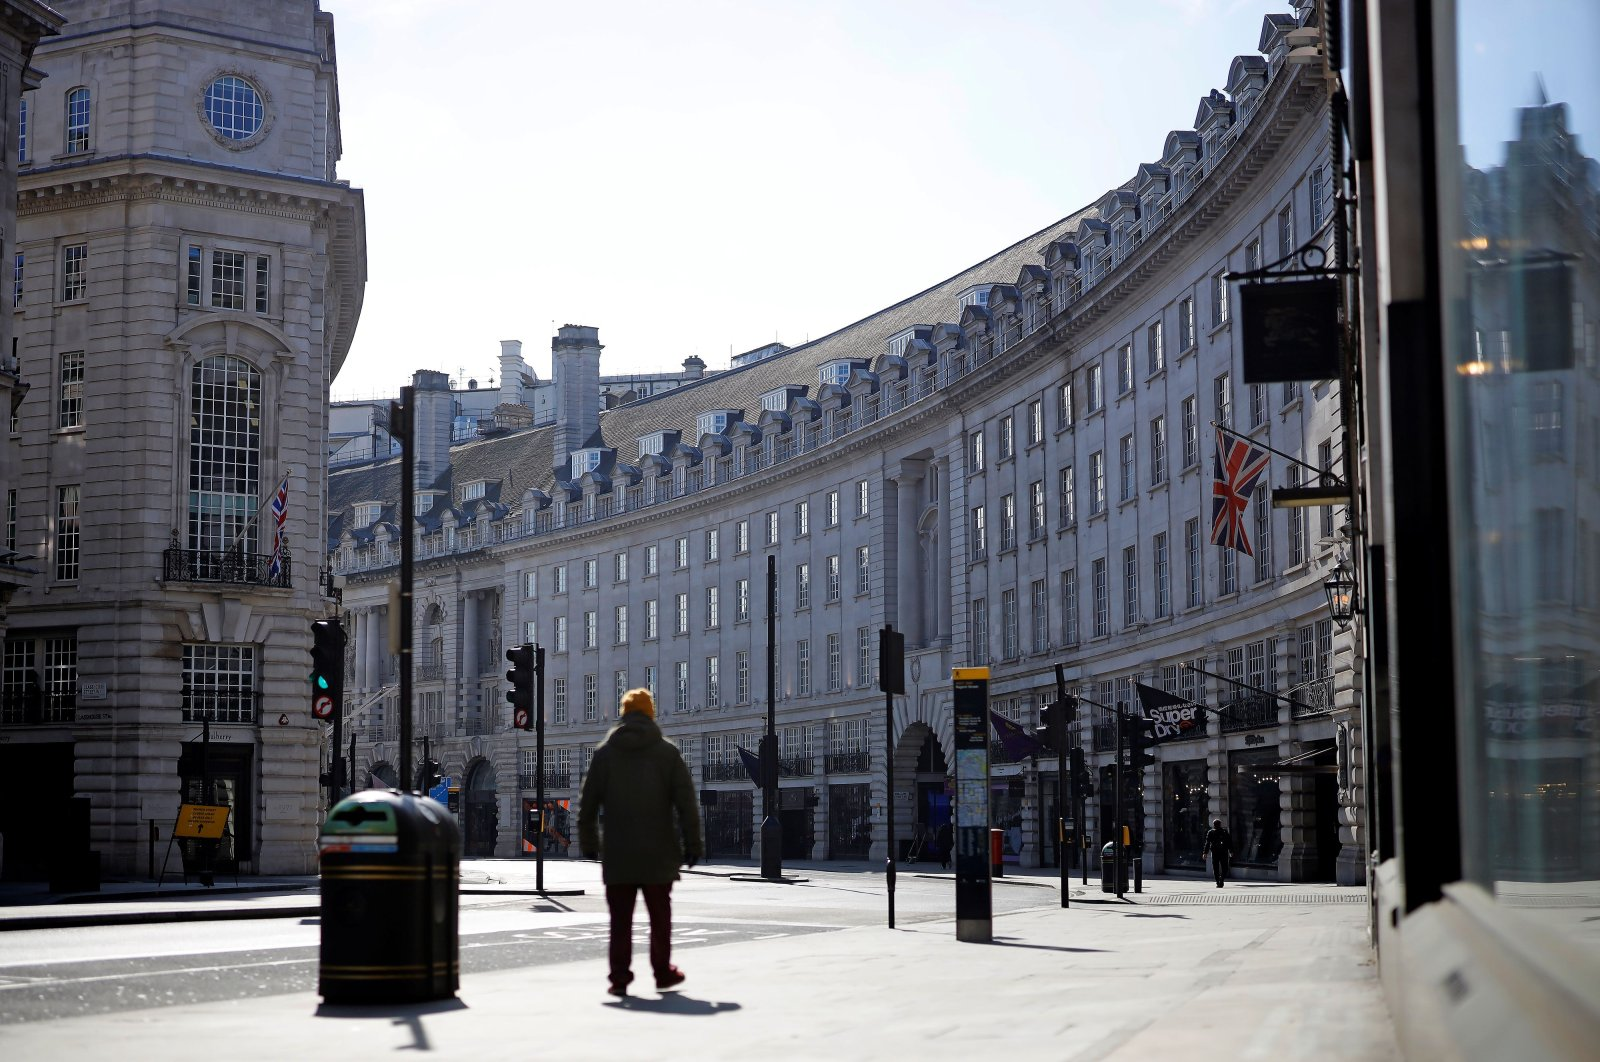 A man walks past closed-down shops on an empty Regent Street in London on Thursday, April 2, 2020, as life in Britain continues during the nationwide lockdown to combat the novel coronavirus pandemic. (AFP Photo)